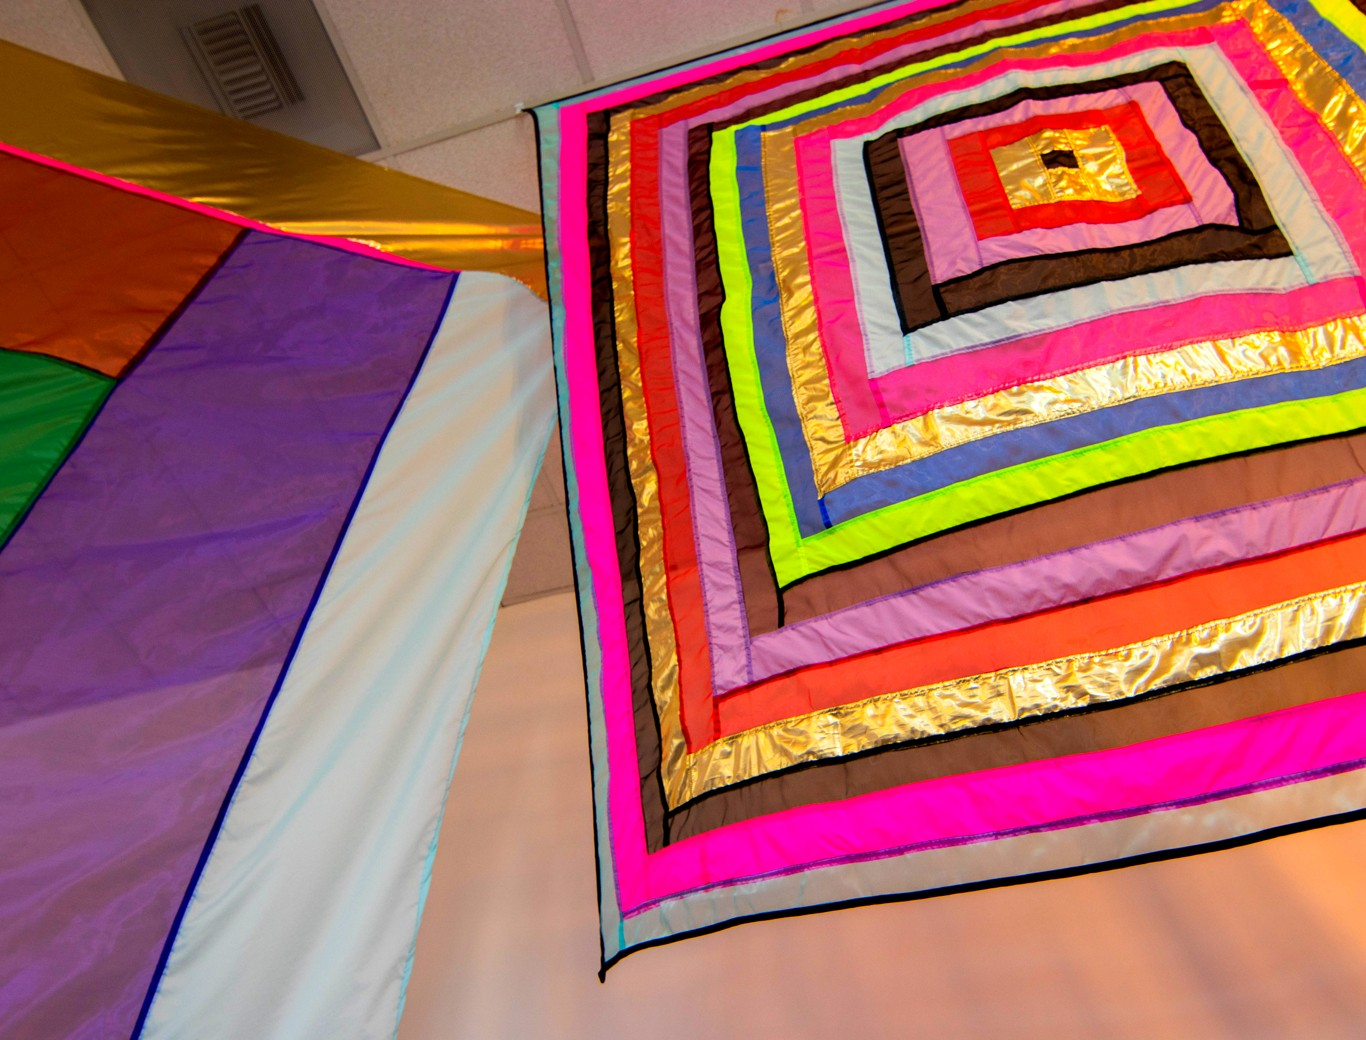 SYZYGY, an installation of colorful fabric structures by nationally recognized artist RACHEL HAYES